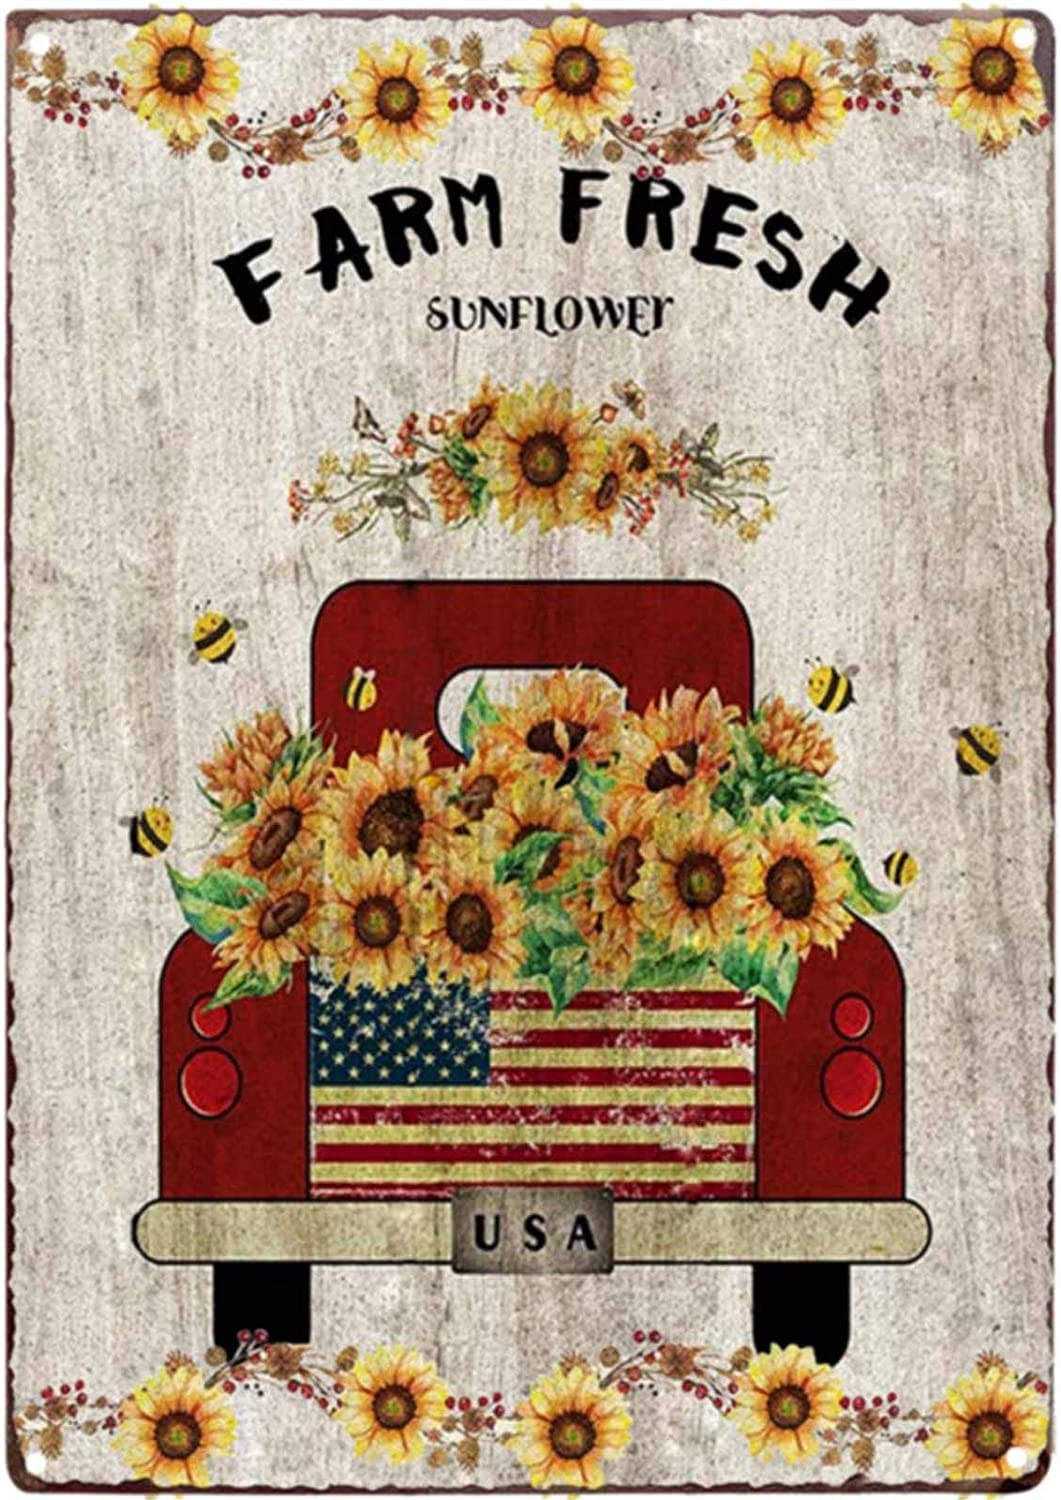 TISOSO Farm Fresh Sunflower Red Truck Vintage Tin Bar Sign Farmhouse Kitchen Wall Country Home Decor for Living Room Bedroom Decoration 8X12Inch